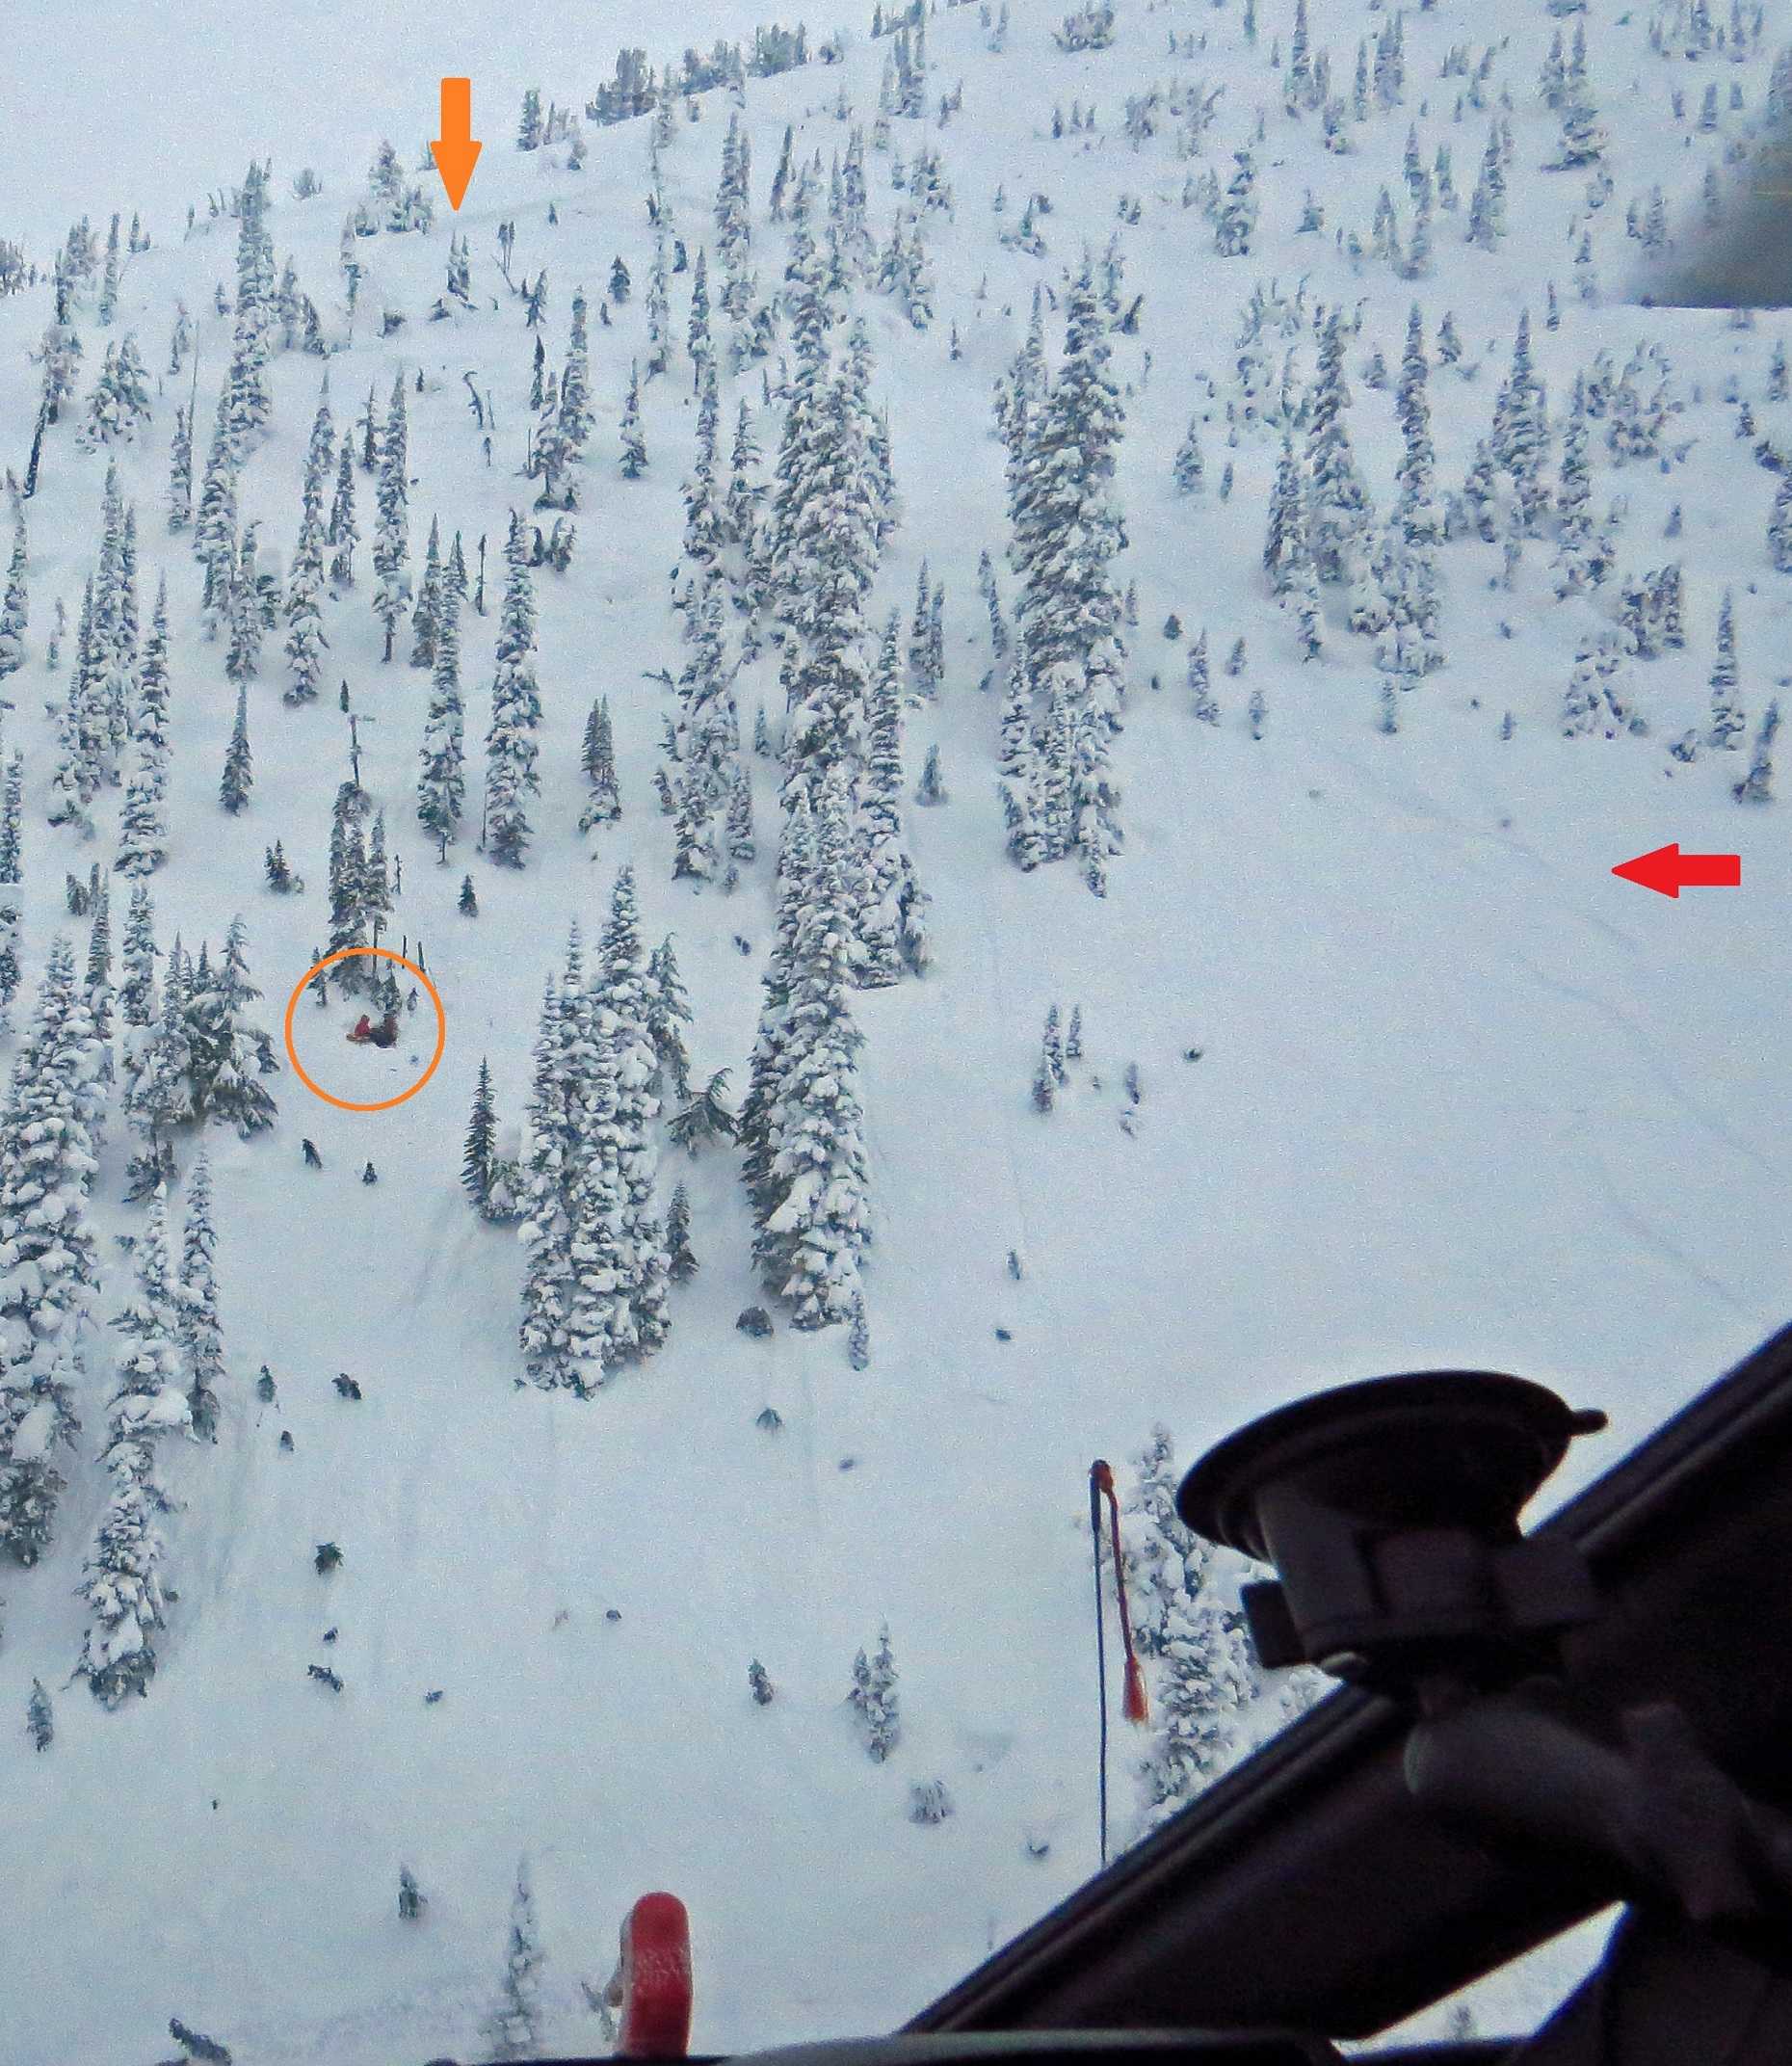 Photo of avalanche showing fracture line, ski tracks and skier location